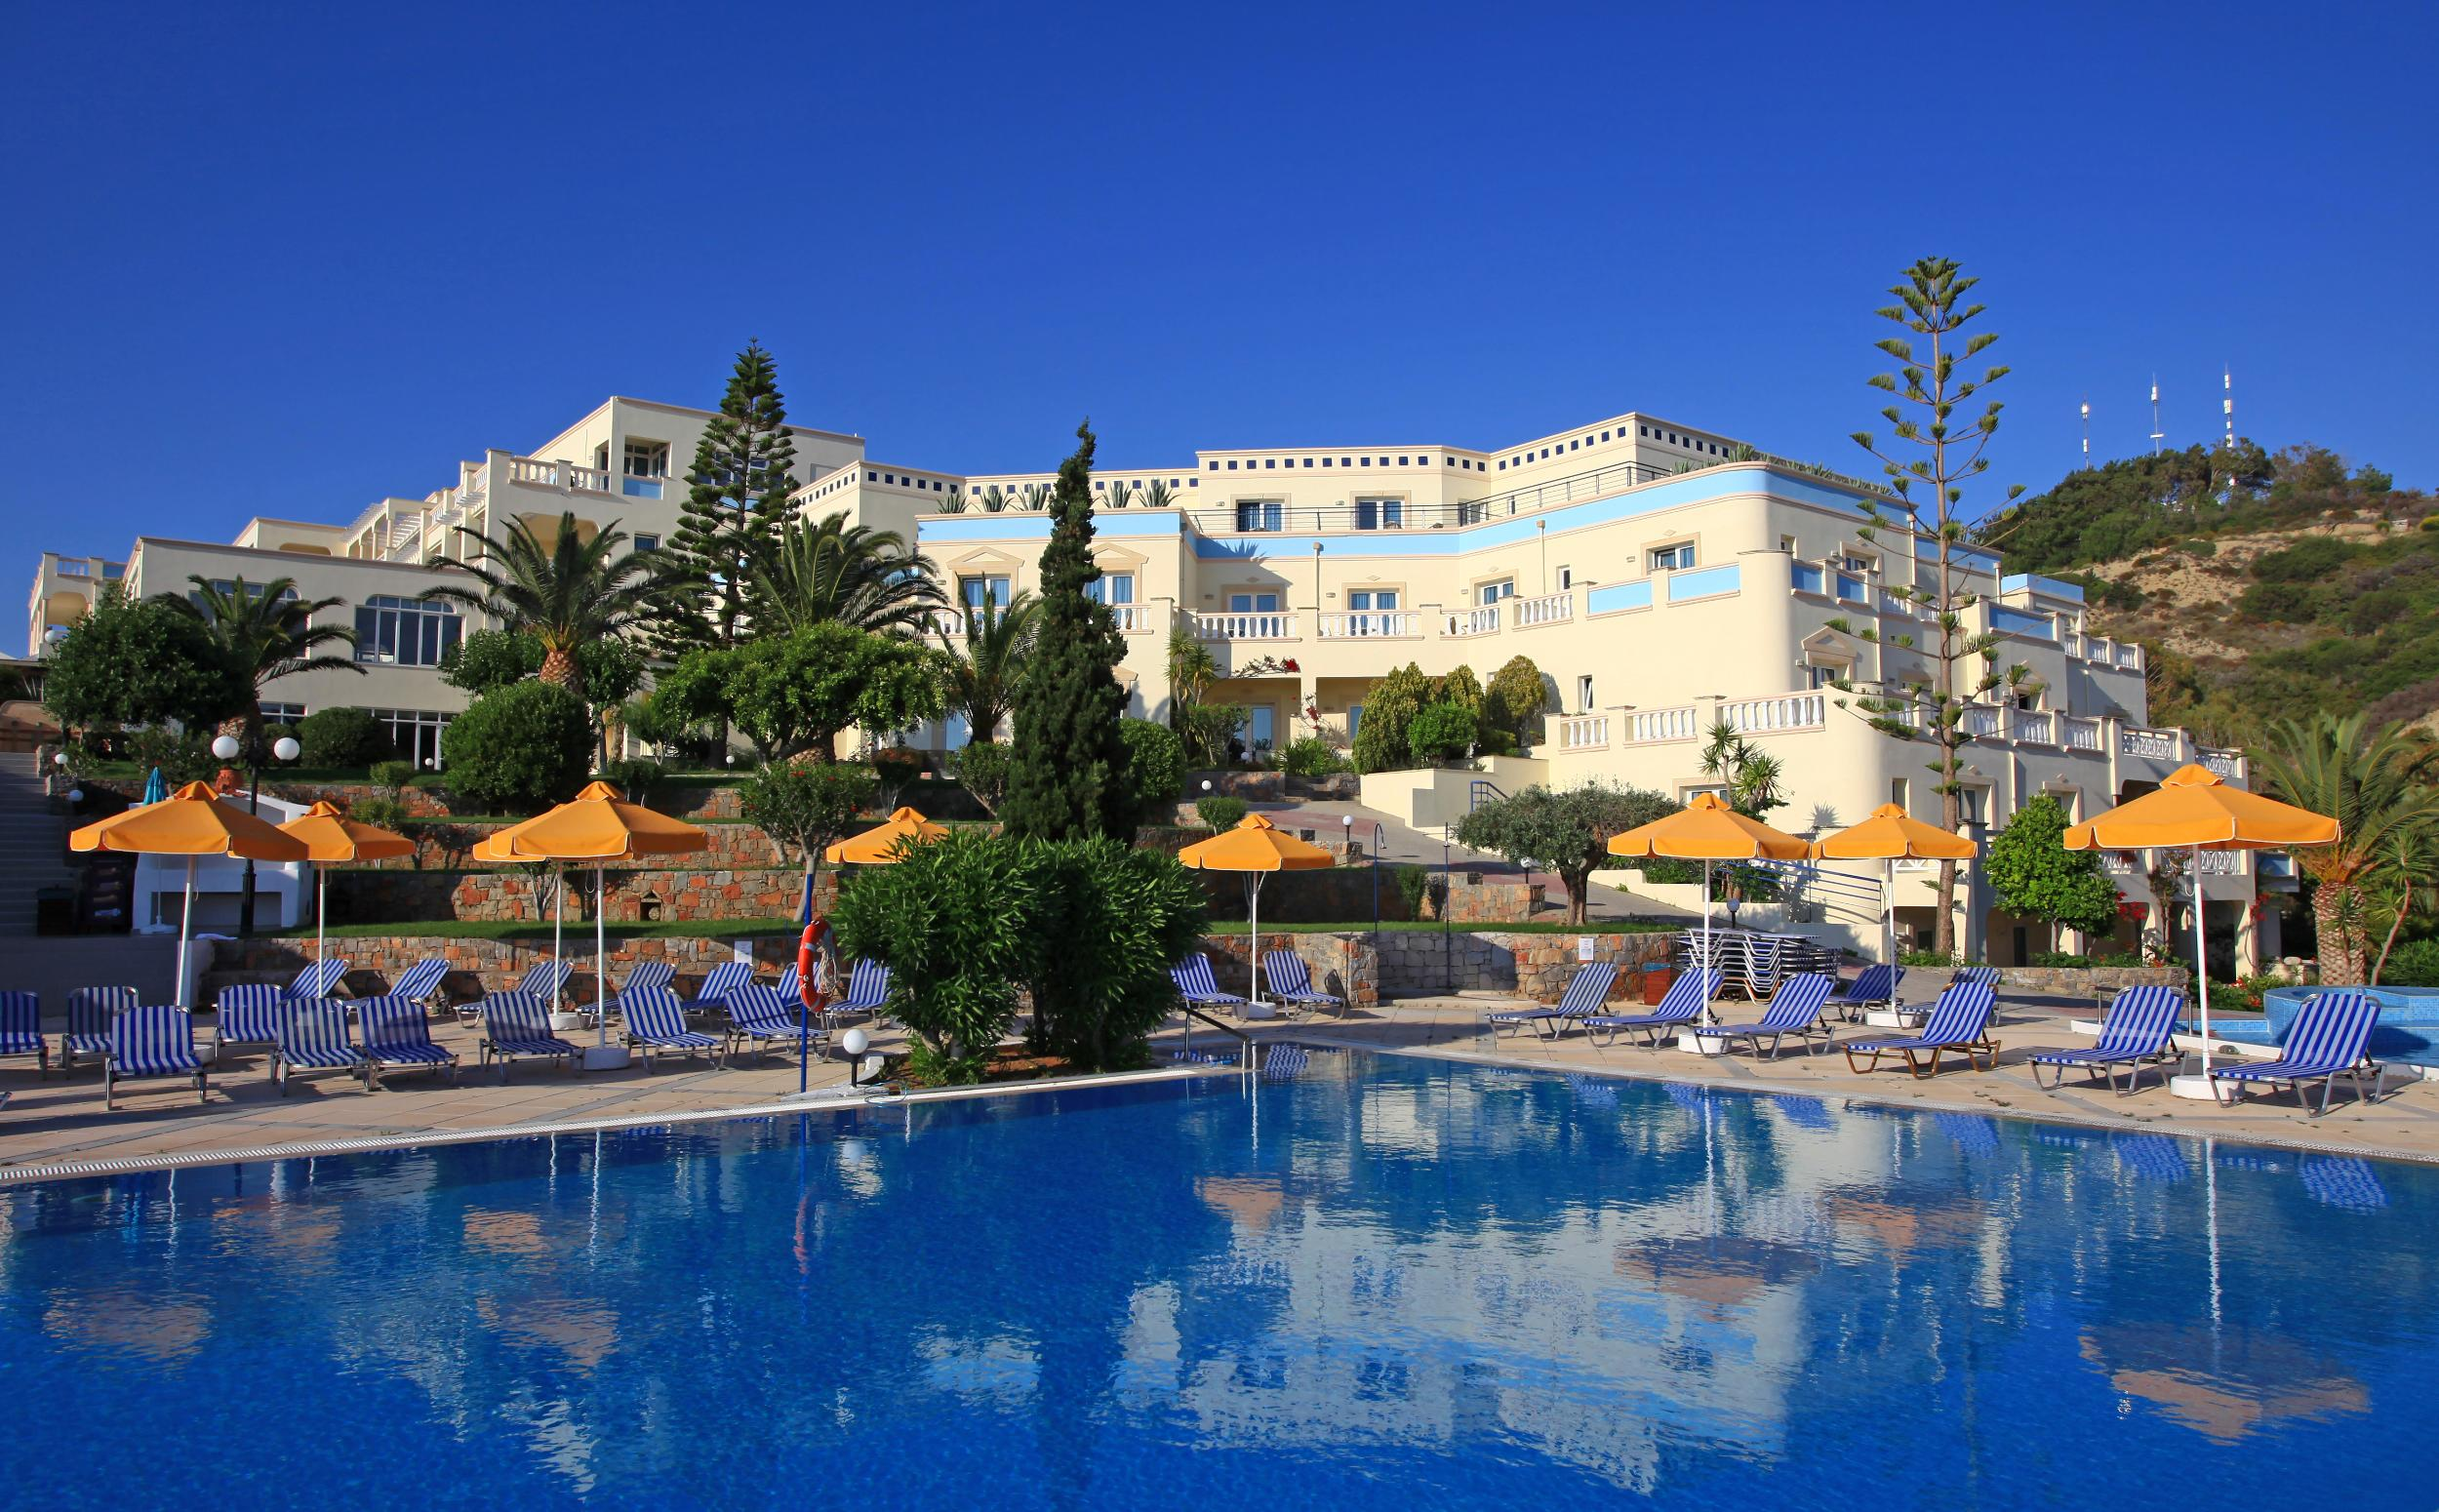 Arion Palace Hotel (adults only) in Ierapetra, Crete, Greek Islands